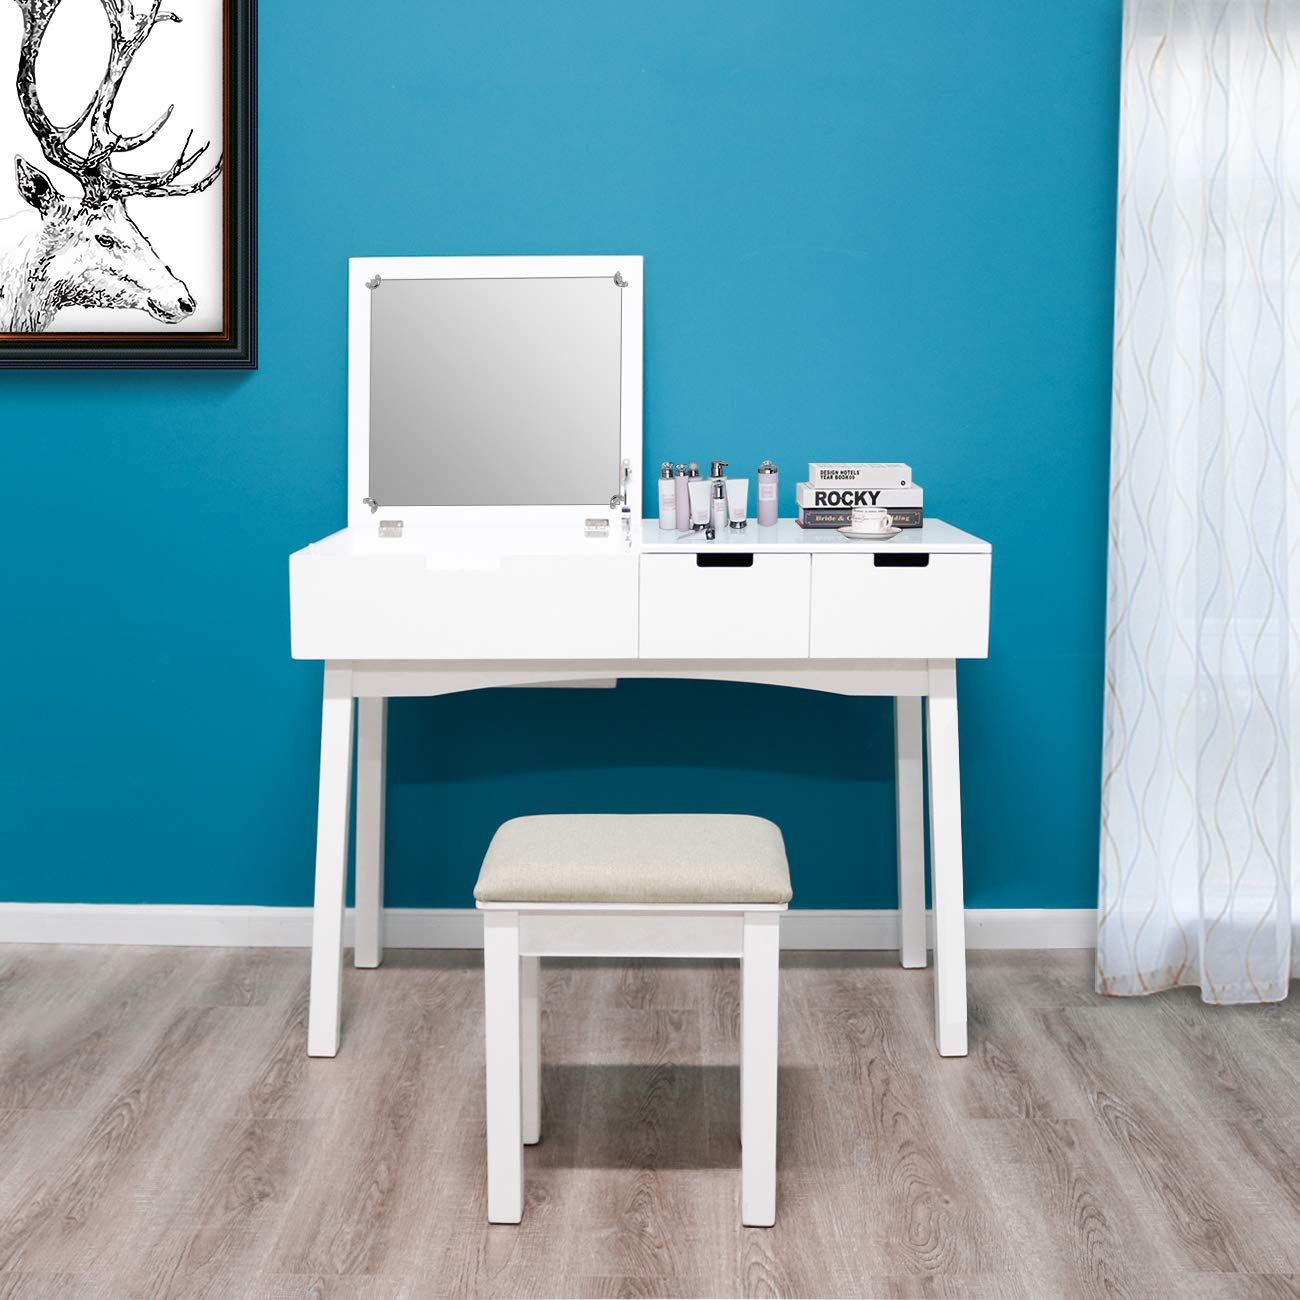 39.17inch Vanity Dressing Table Set with Flip Top Mirror Makeup Table Writing Desk, 2 Drawers 1 Large Storage Space with Drop Organizers, Cushioned Stool Easy Assembly (White)